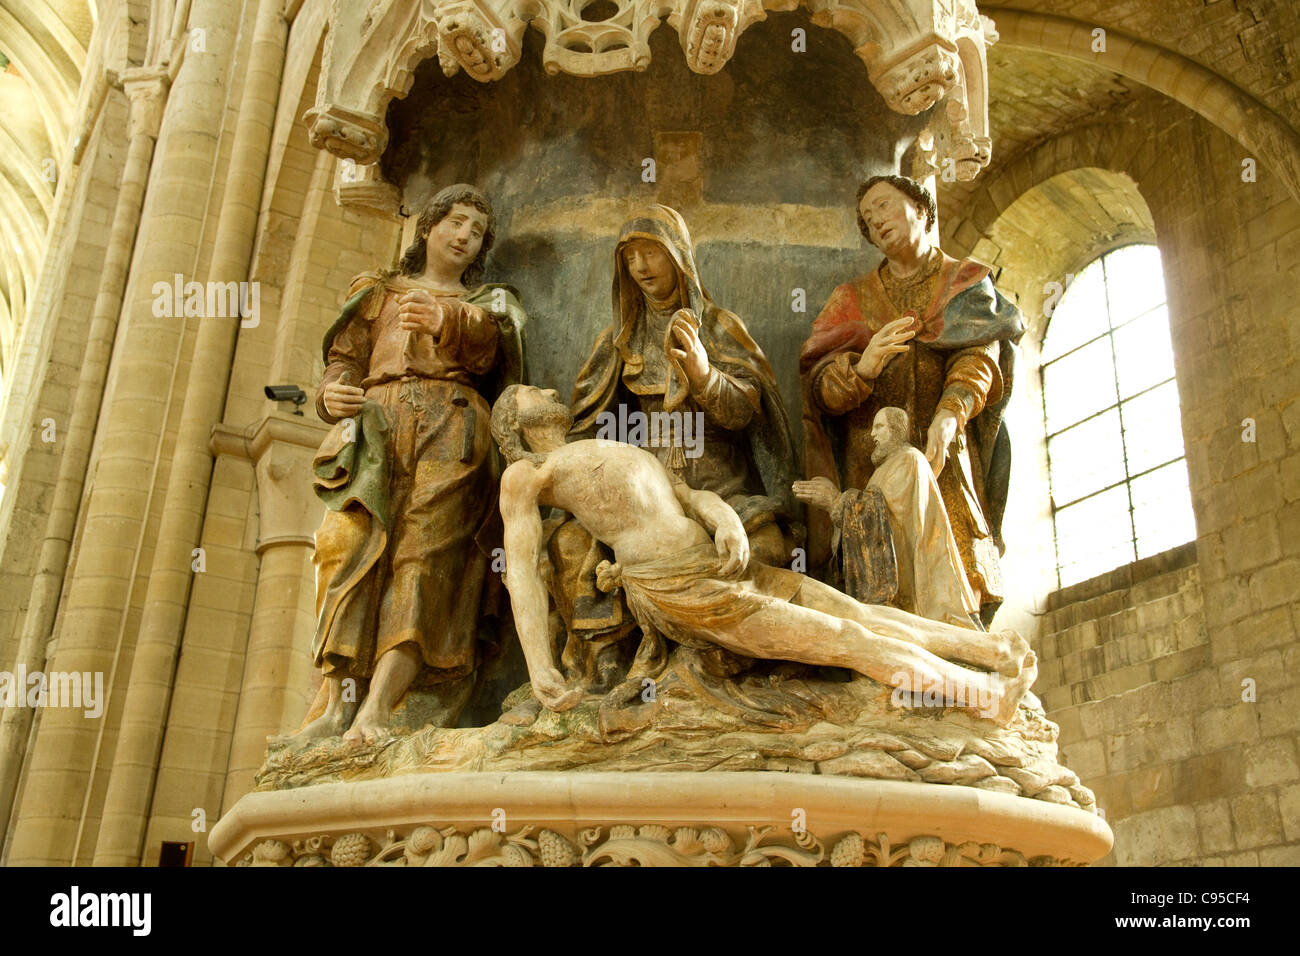 A scene of the pieta in the Cathedral of St Peter in the town of Beauvais France Stock Photo